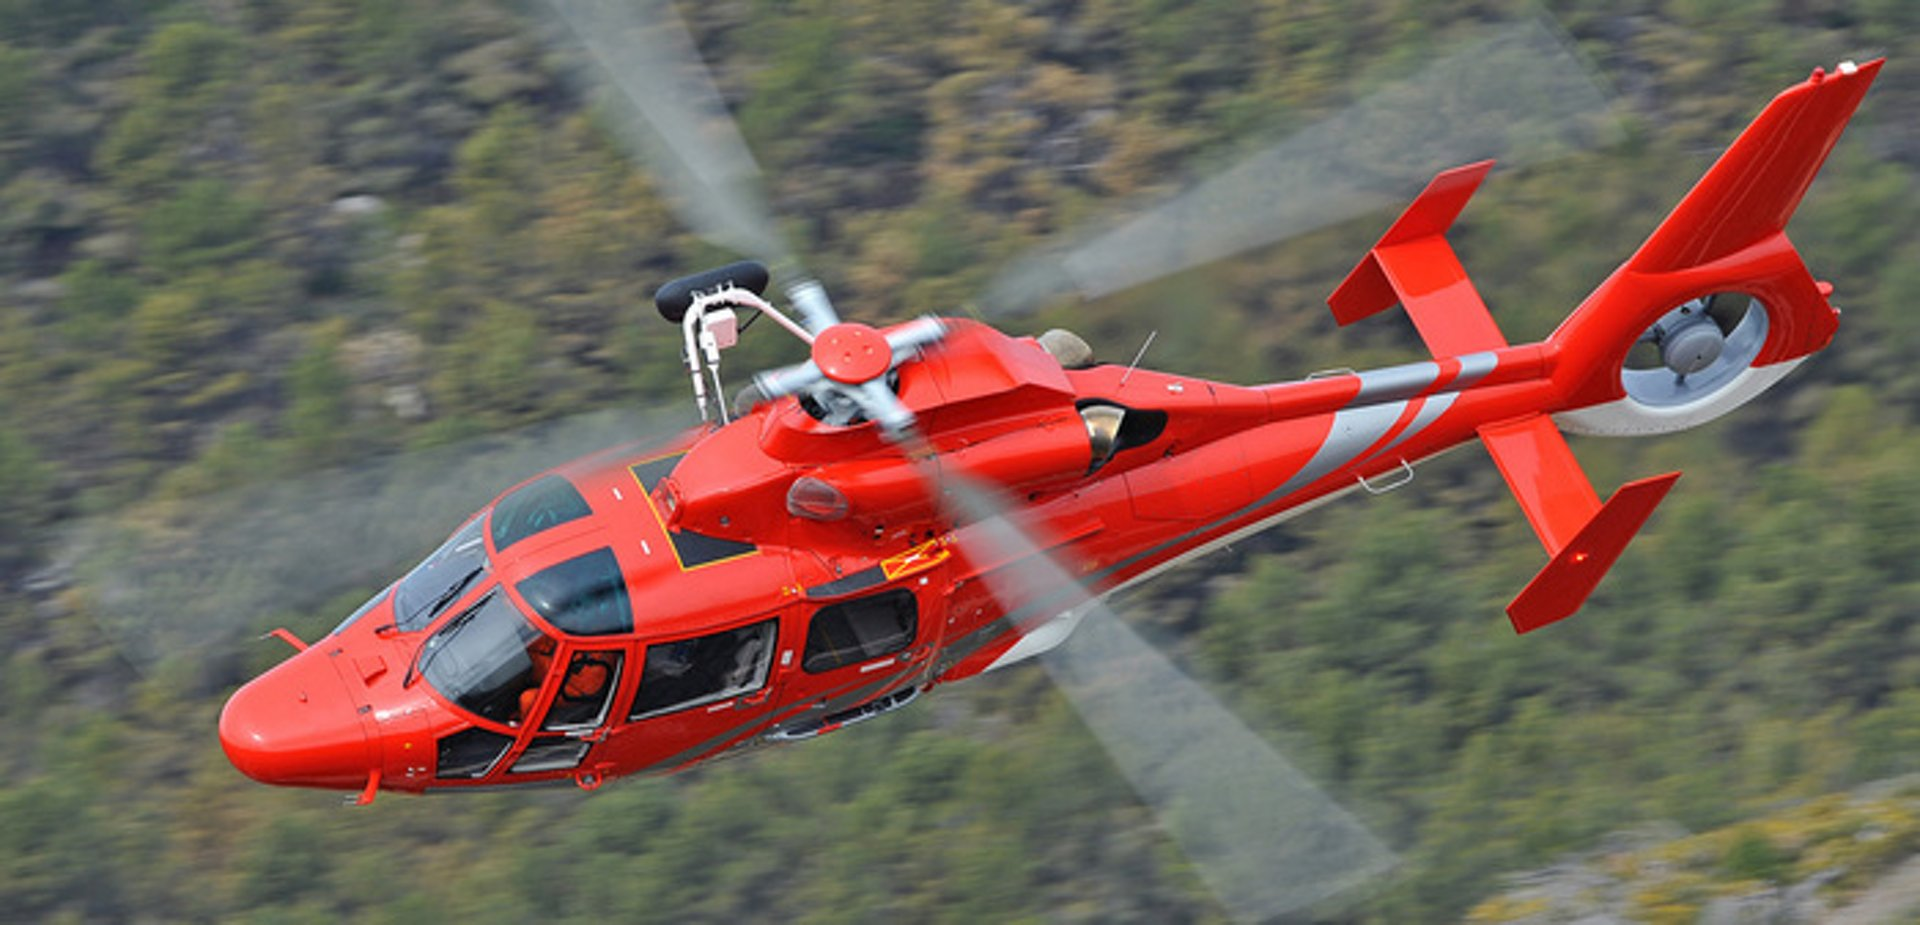 The AS365 N3+ is a member of Airbus' medium-weight Dauphin family of helicopters.